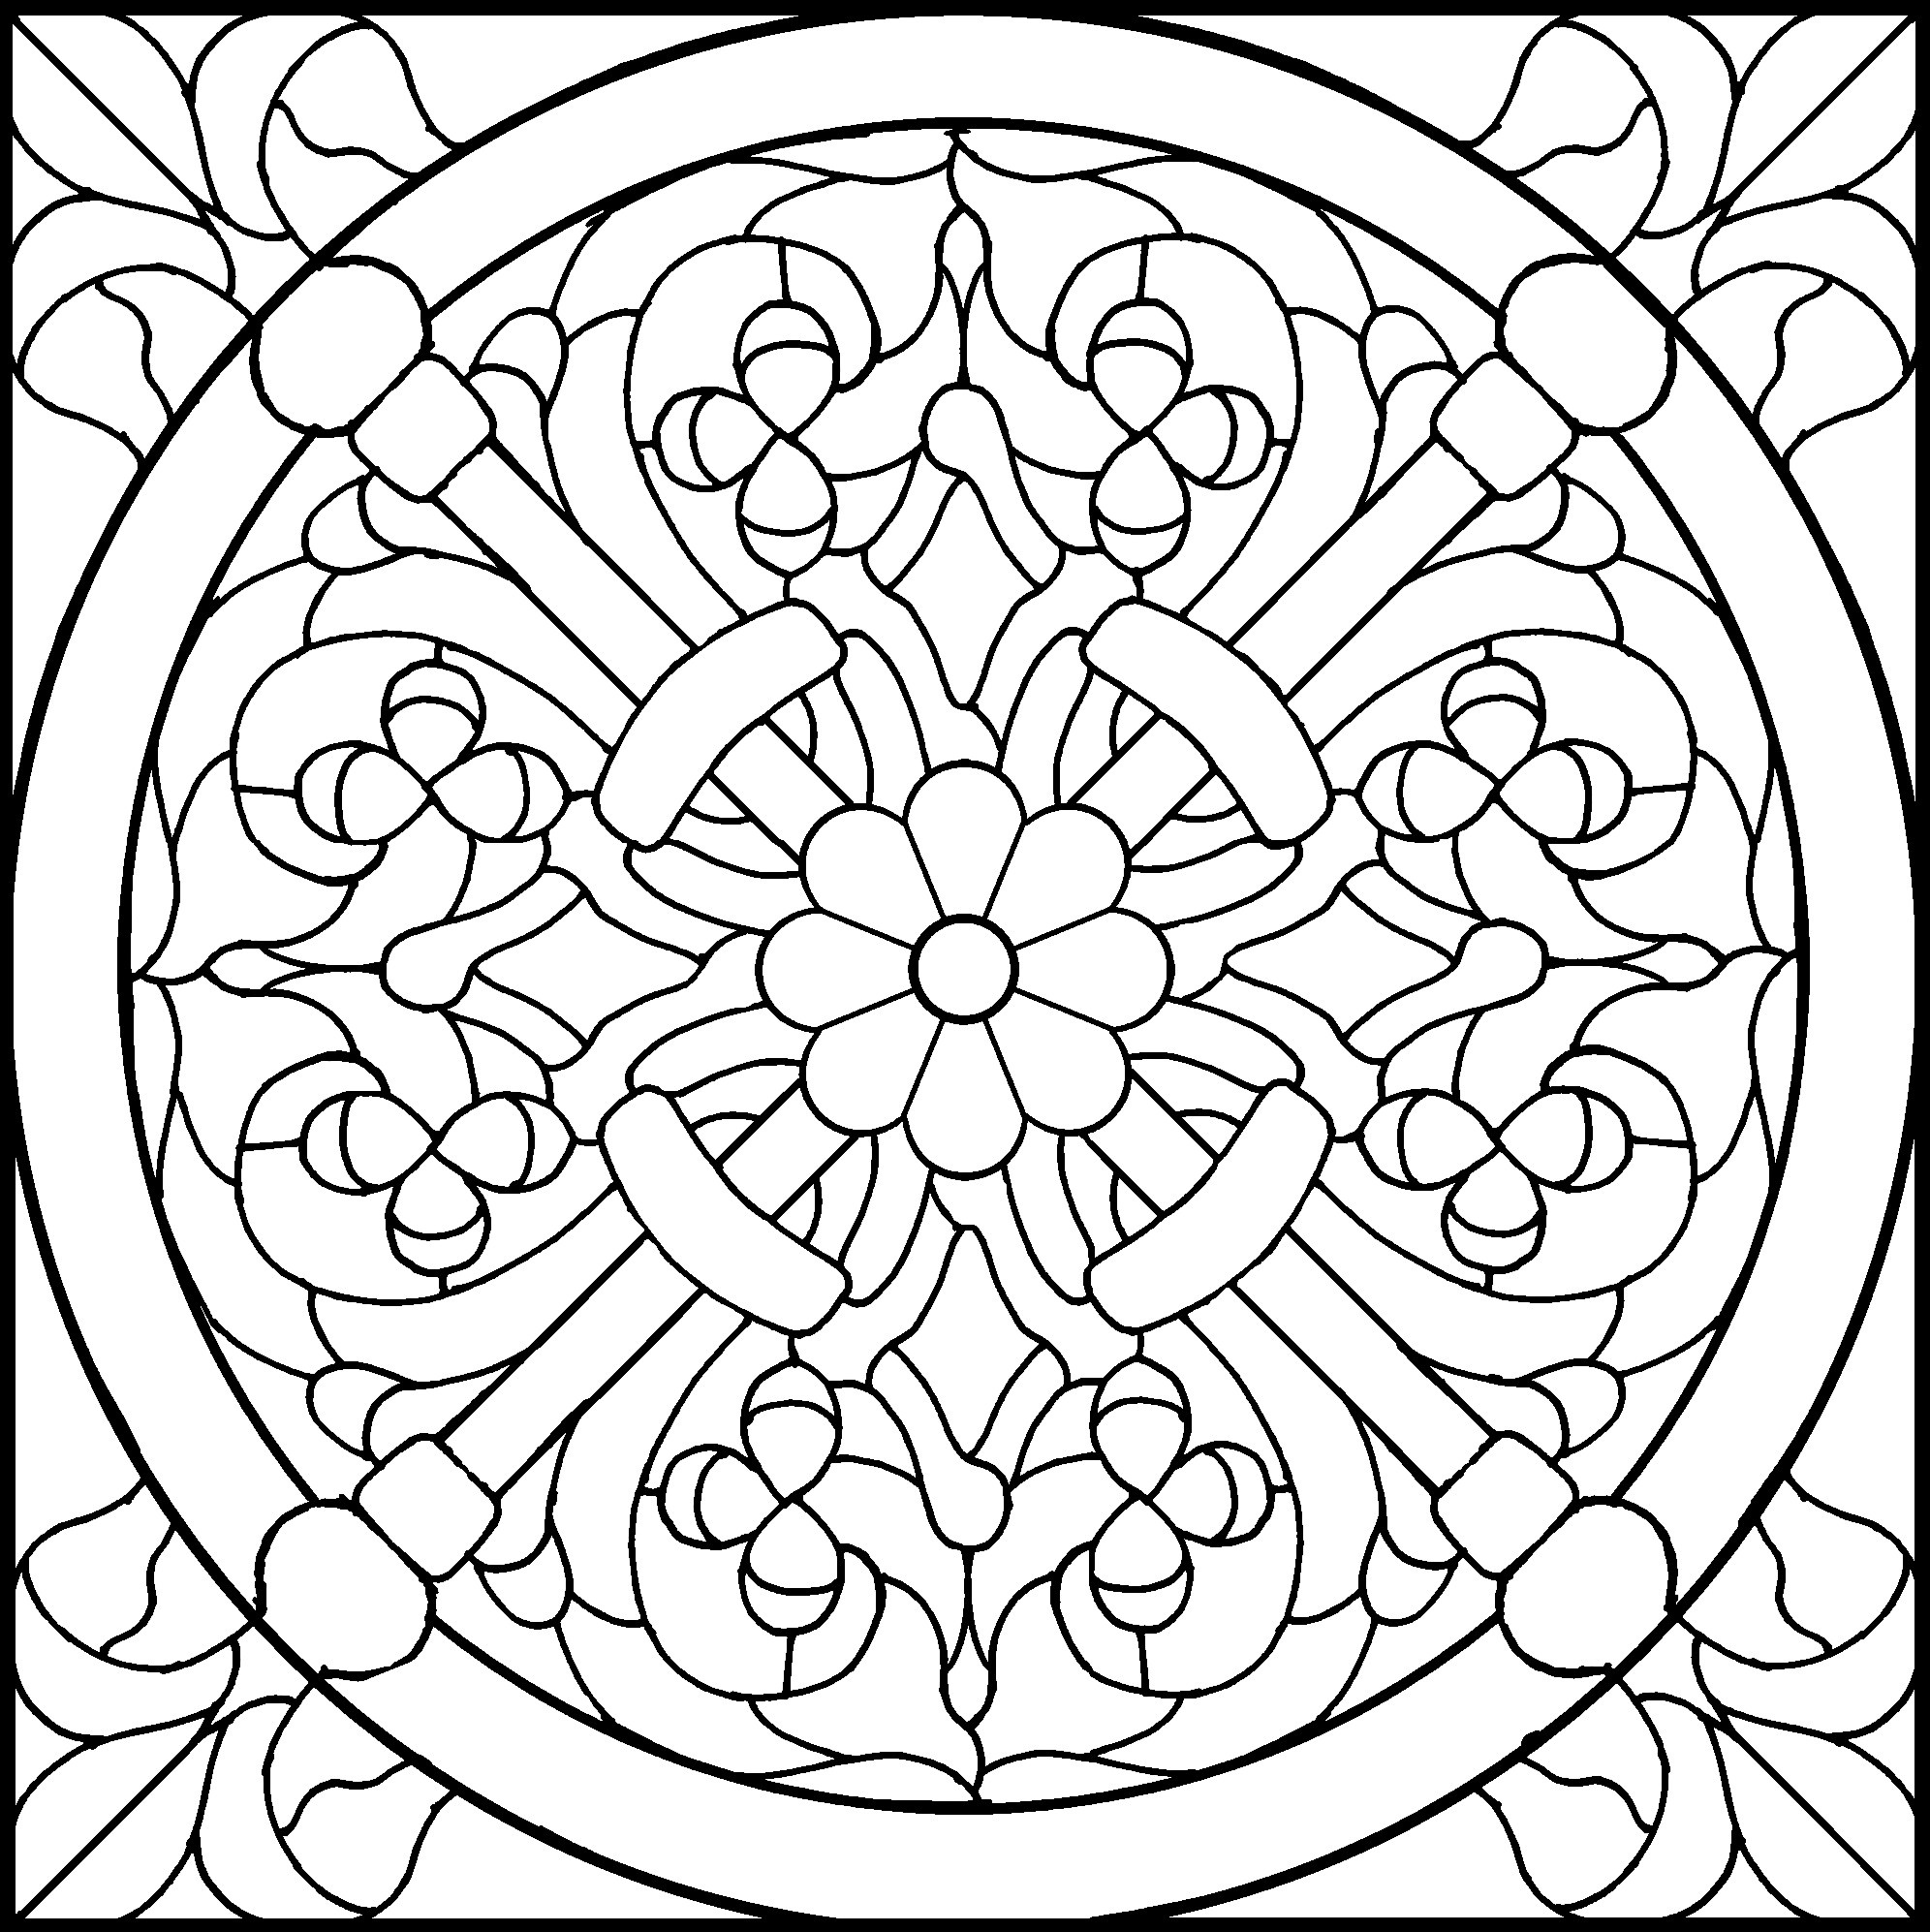 45 Simple Stained Glass Patterns | Guide Patterns - Free Printable Stained Glass Patterns